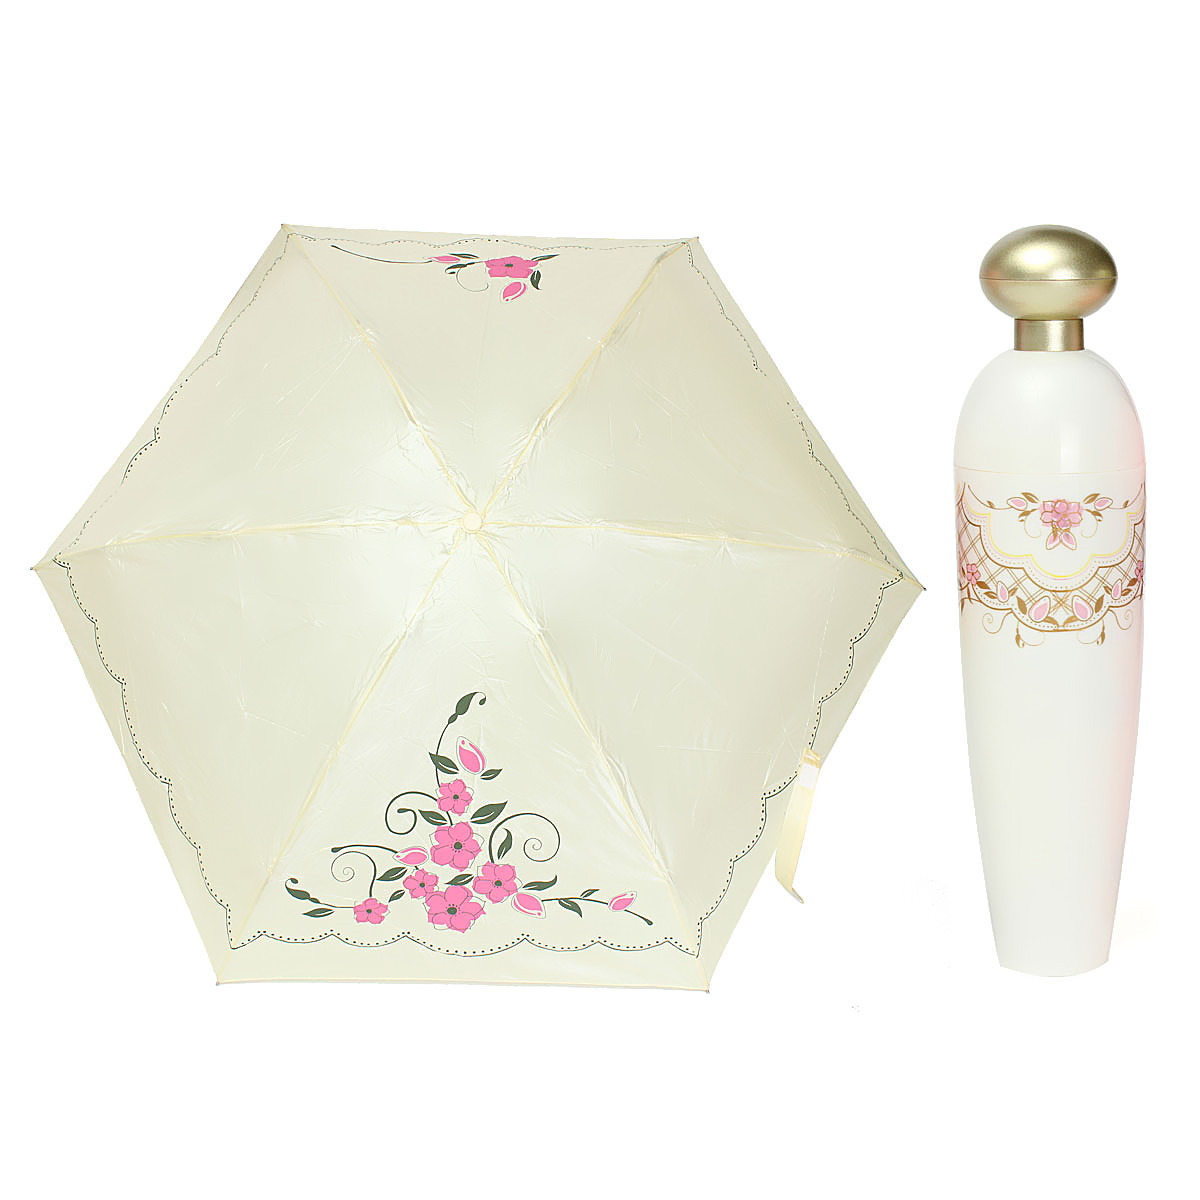 Fashion Women Princess Queen Lady Portable Folding Perfume Bottles Folwer Vase Style Sunshade Umbrella Parasol